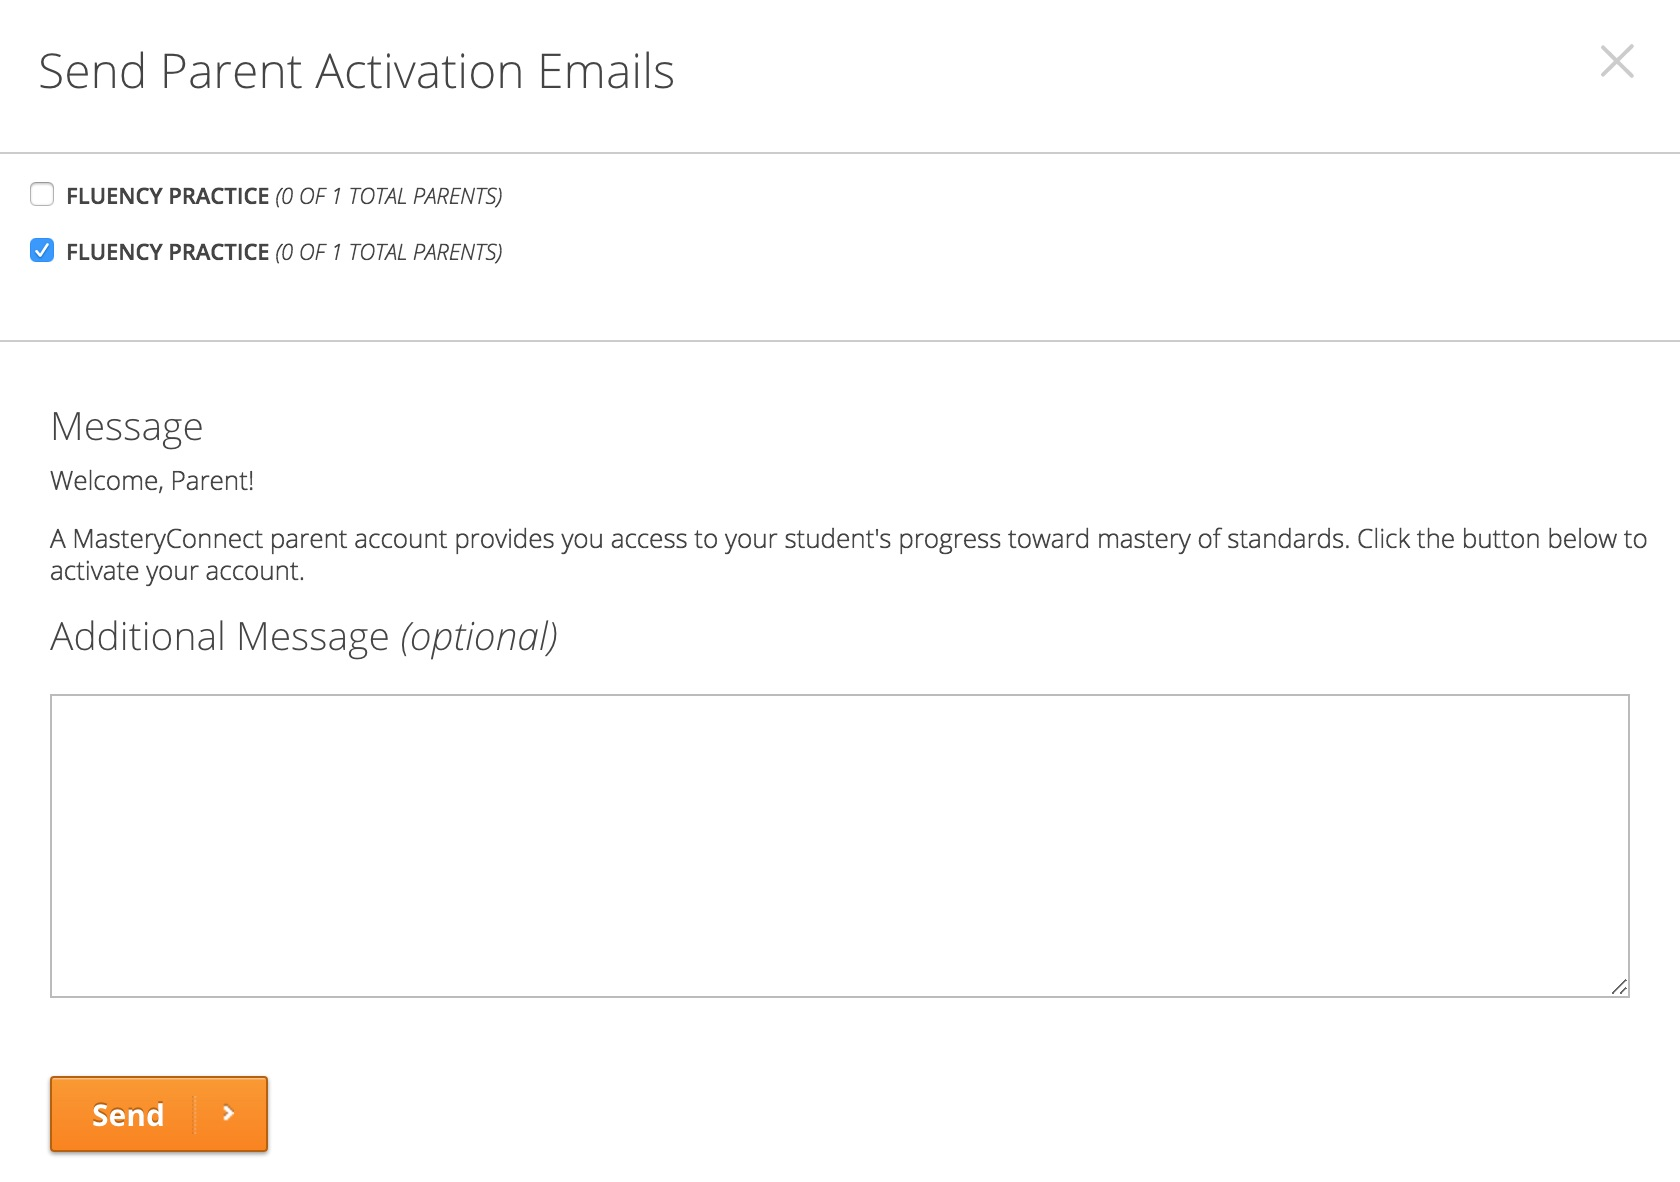 Send Parent Activation Emails Modal